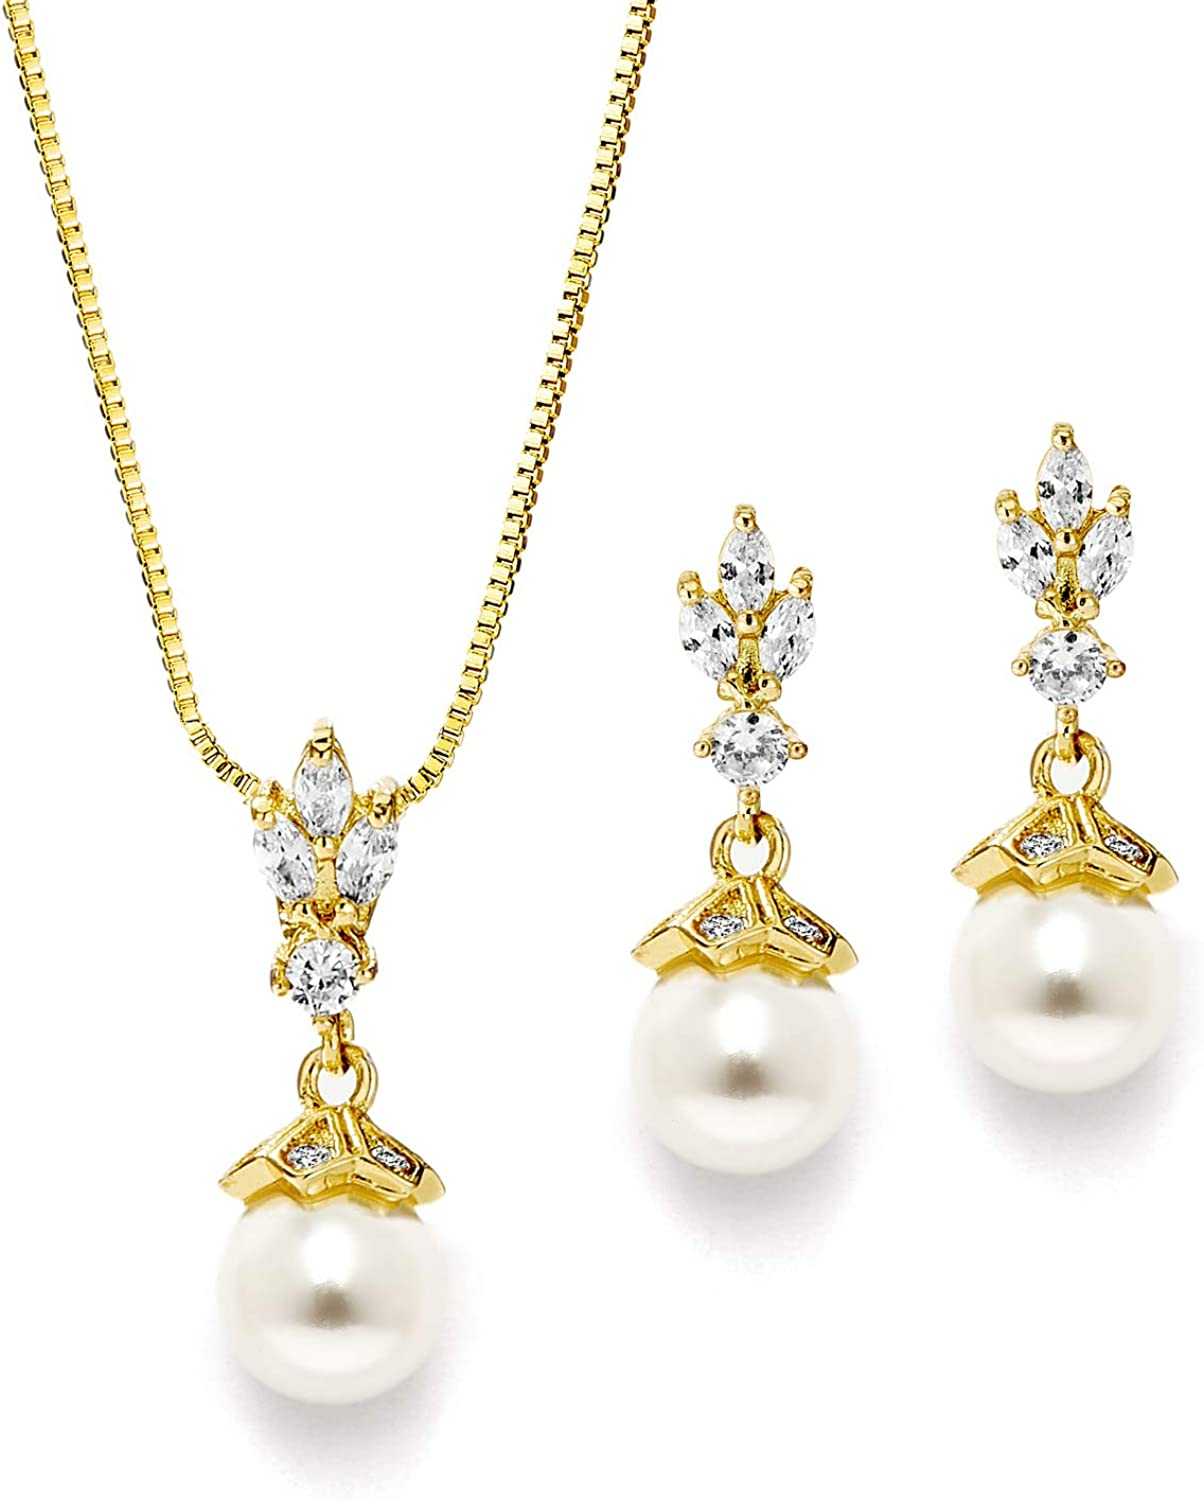 Vintage CZ Cubic Zirconia Pave and Pearl Drops Necklace and Earrings Bridal Jewelry Wedding Set